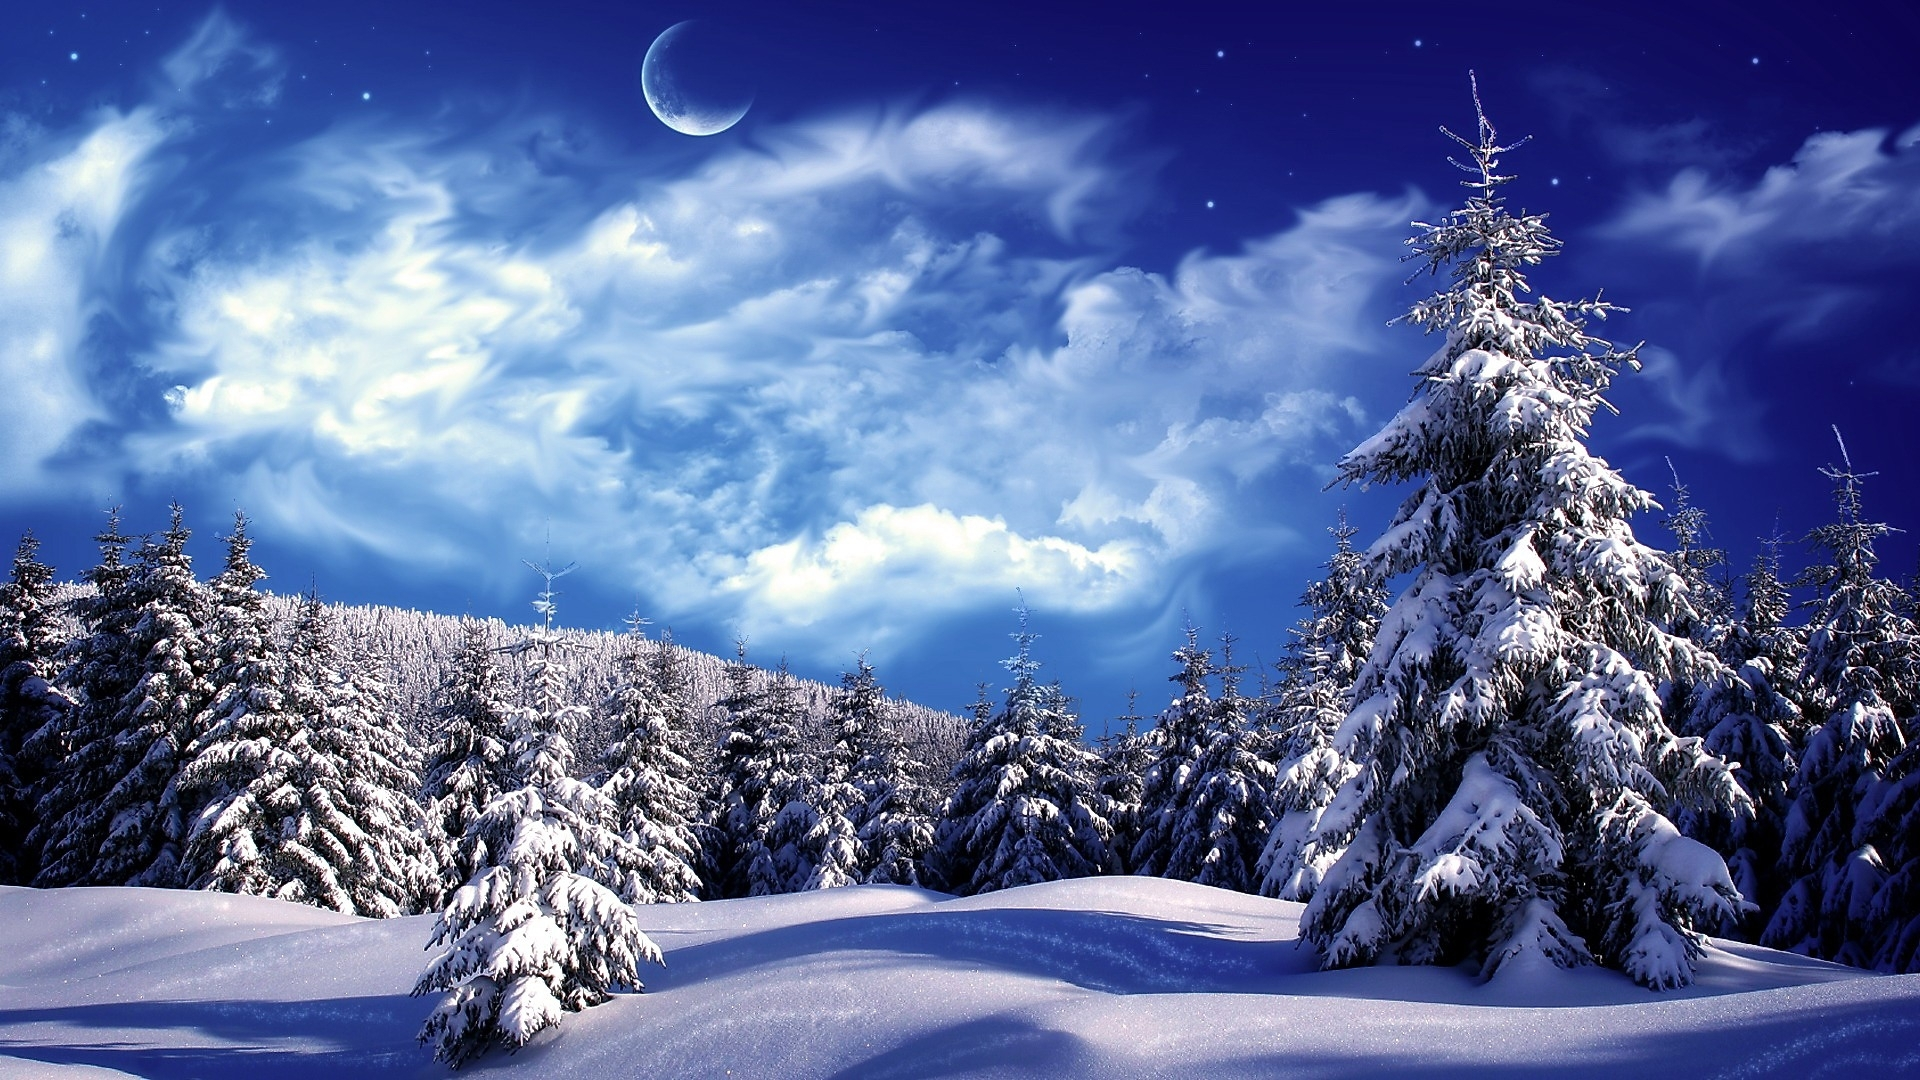 snowy winter scenes wallpaper | snowy wonderland, mountain, scene